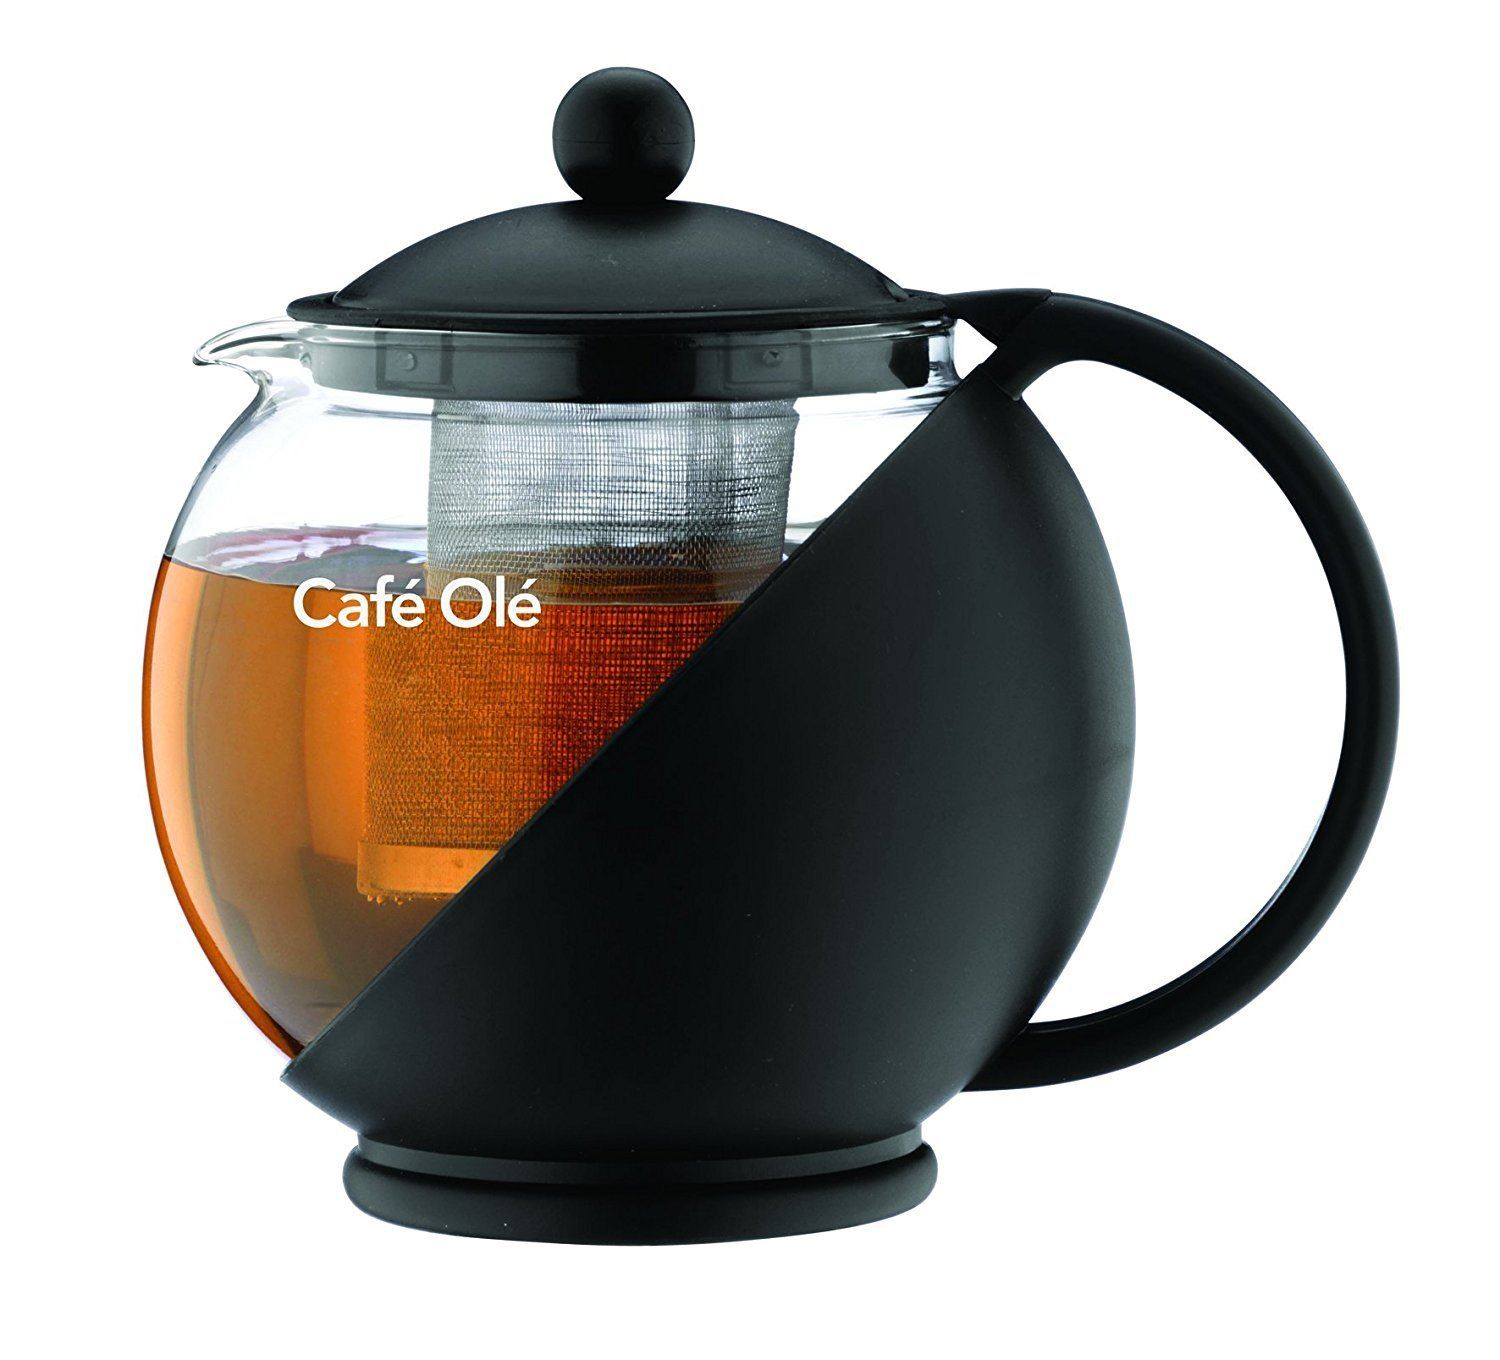 Caf? Ole Everyday Round Tea Pot Infuser Basket Glass Teapot Loose Leaf, Black, 1250 Ml/1.25 Litre